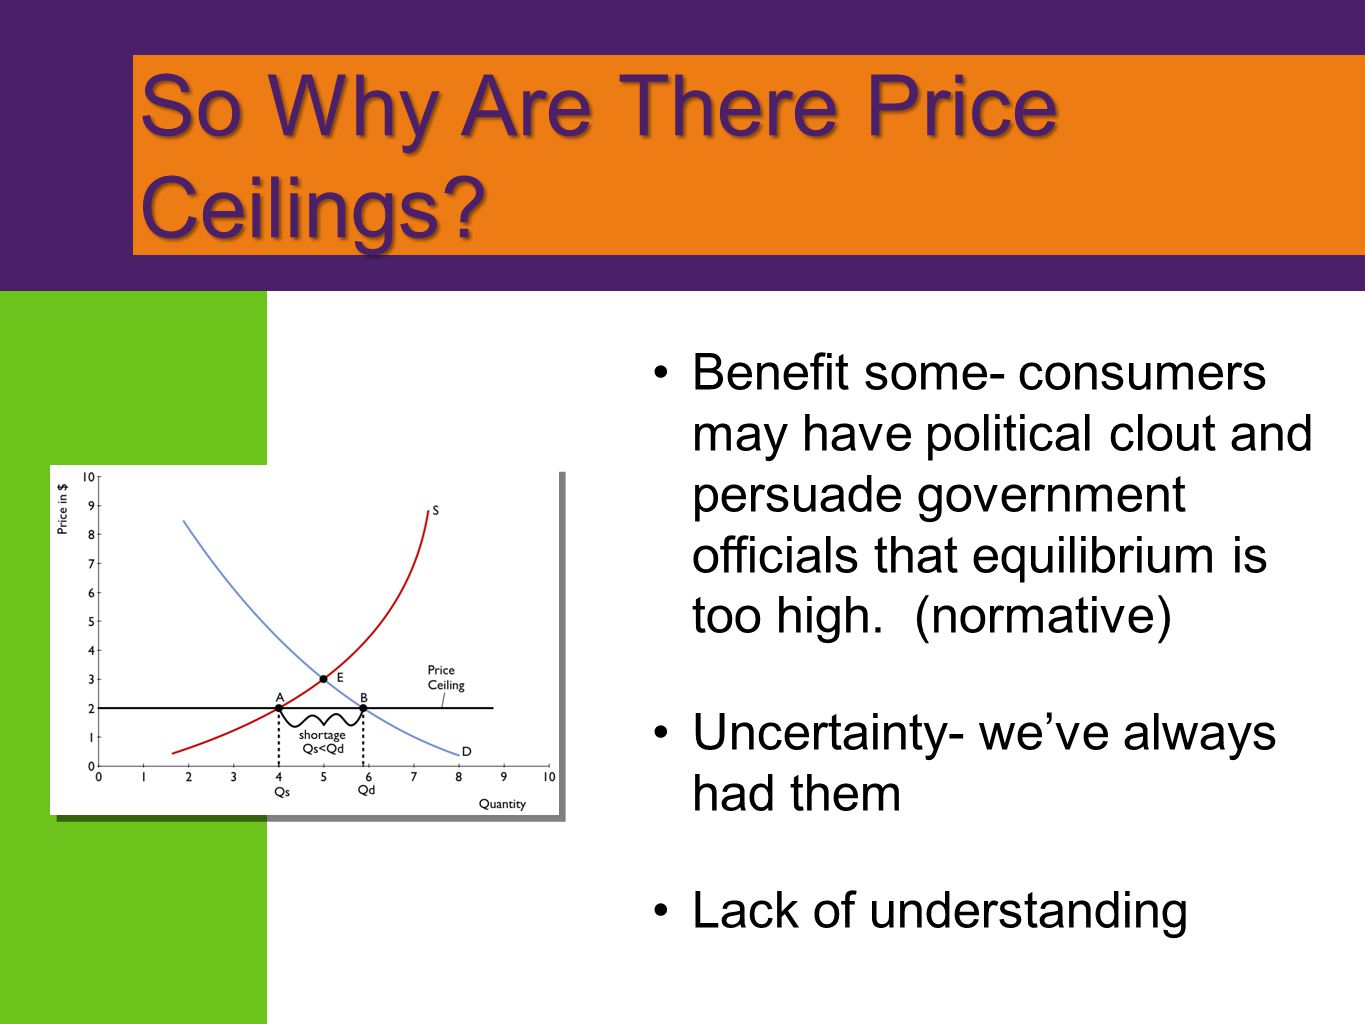 So Why Are There Price Ceilings